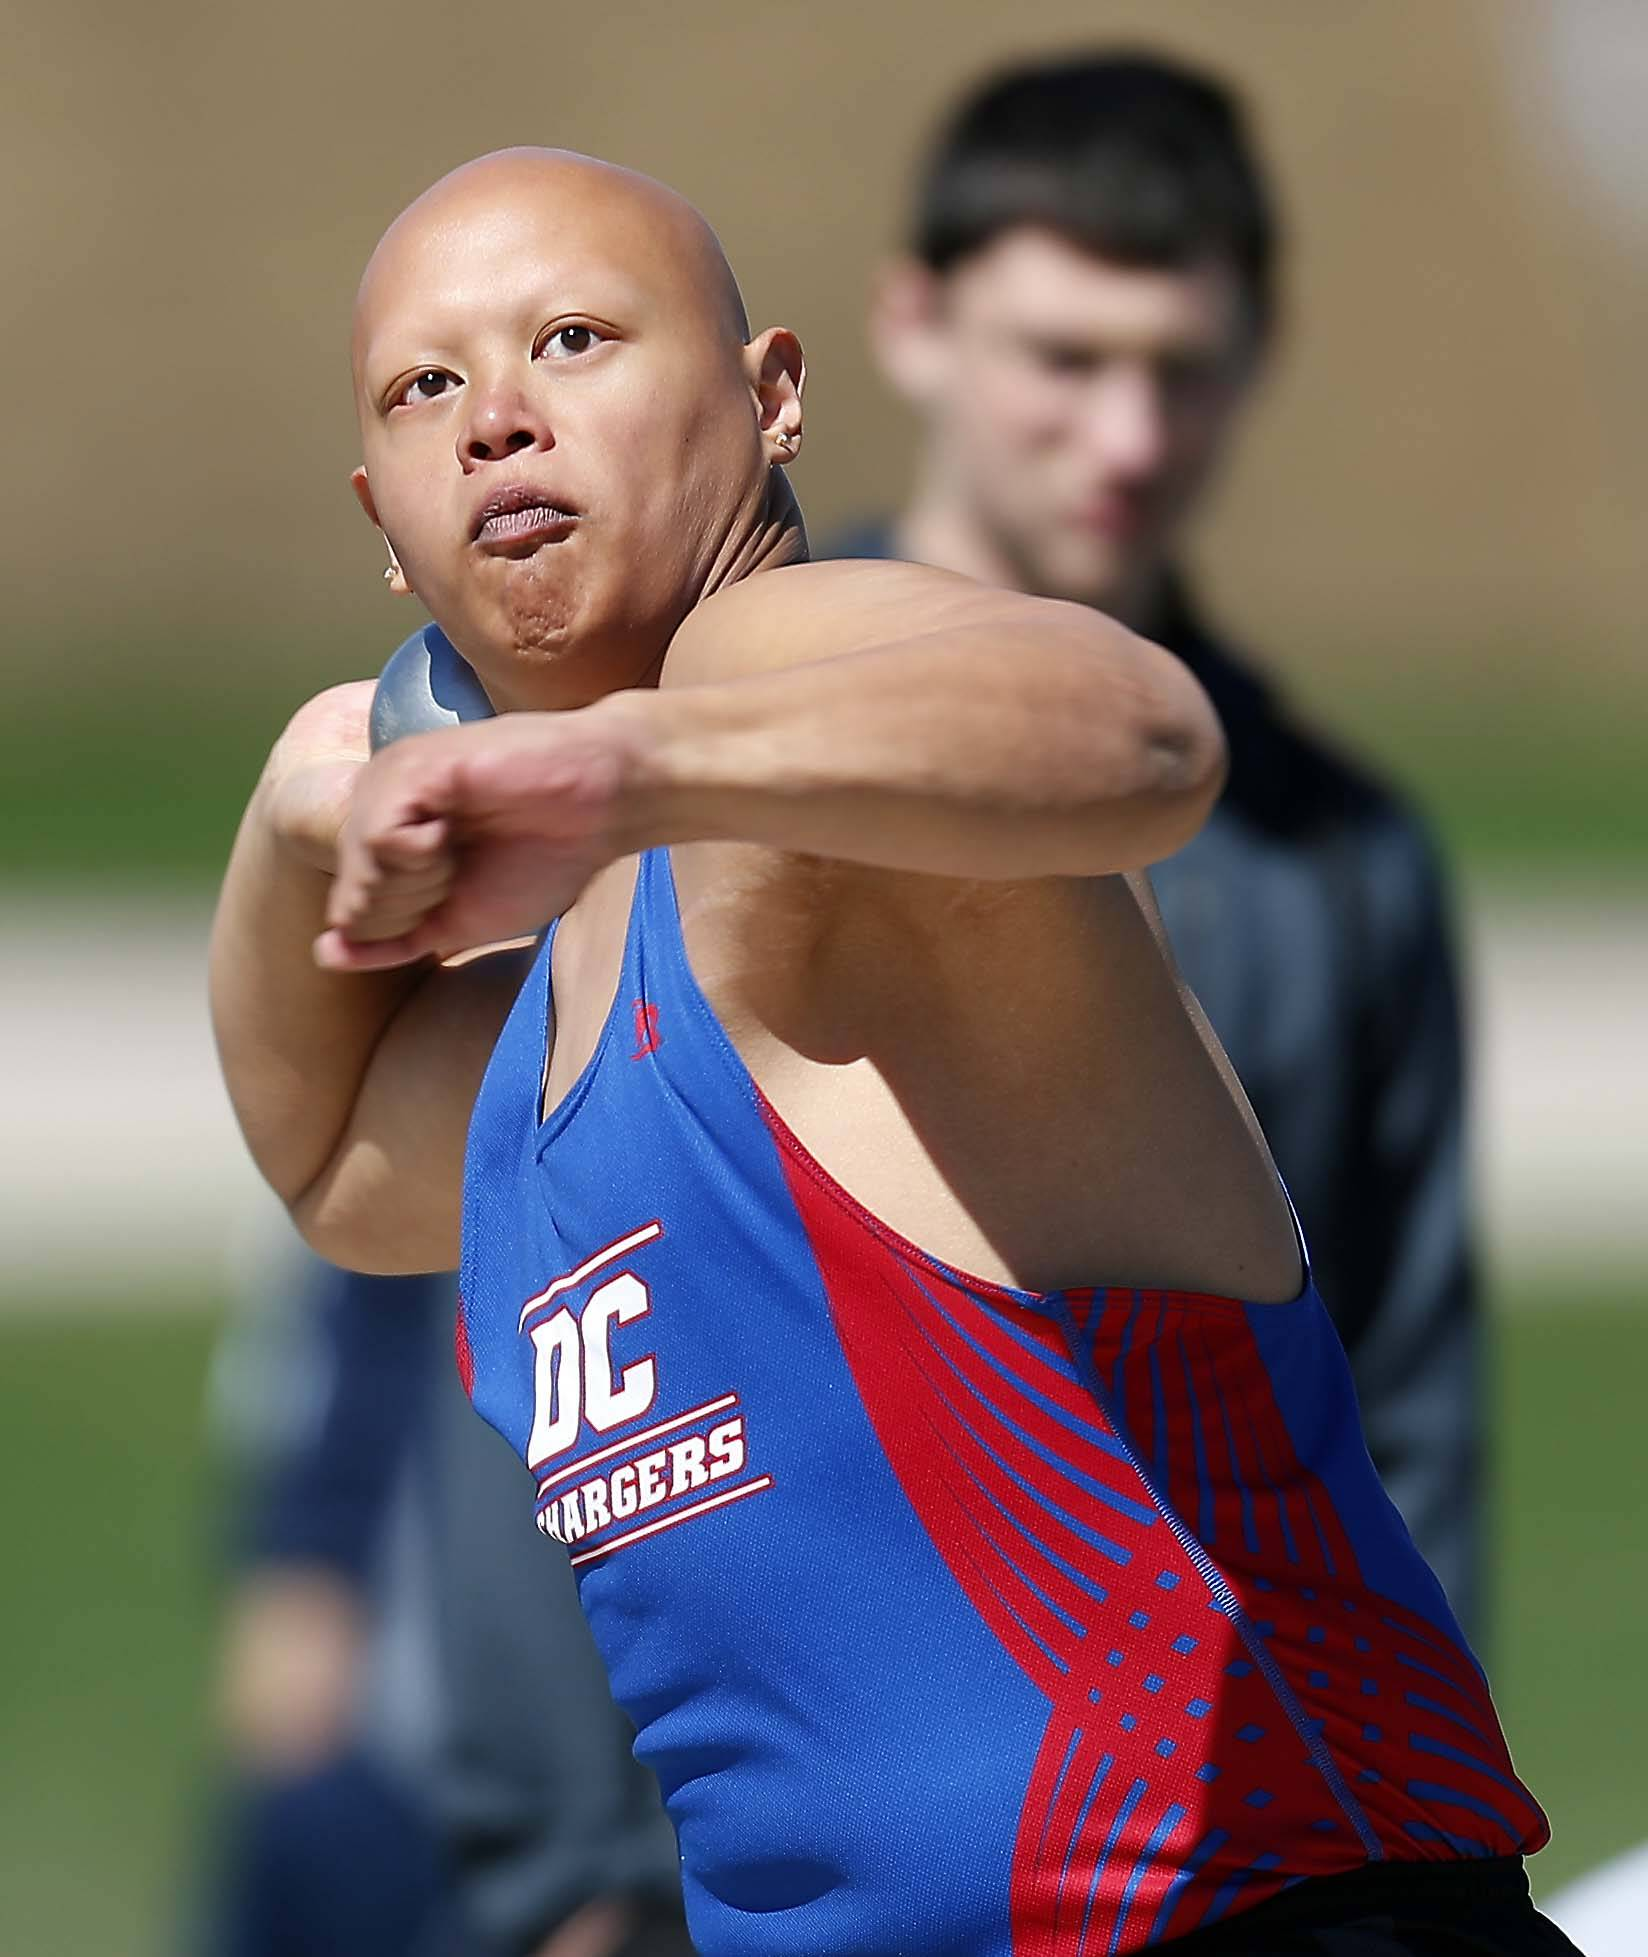 Kristian Boado of Dundee-Crown in the shot put Saturday at the Kaneland Peterson Prep Track Meet in Maple Park.